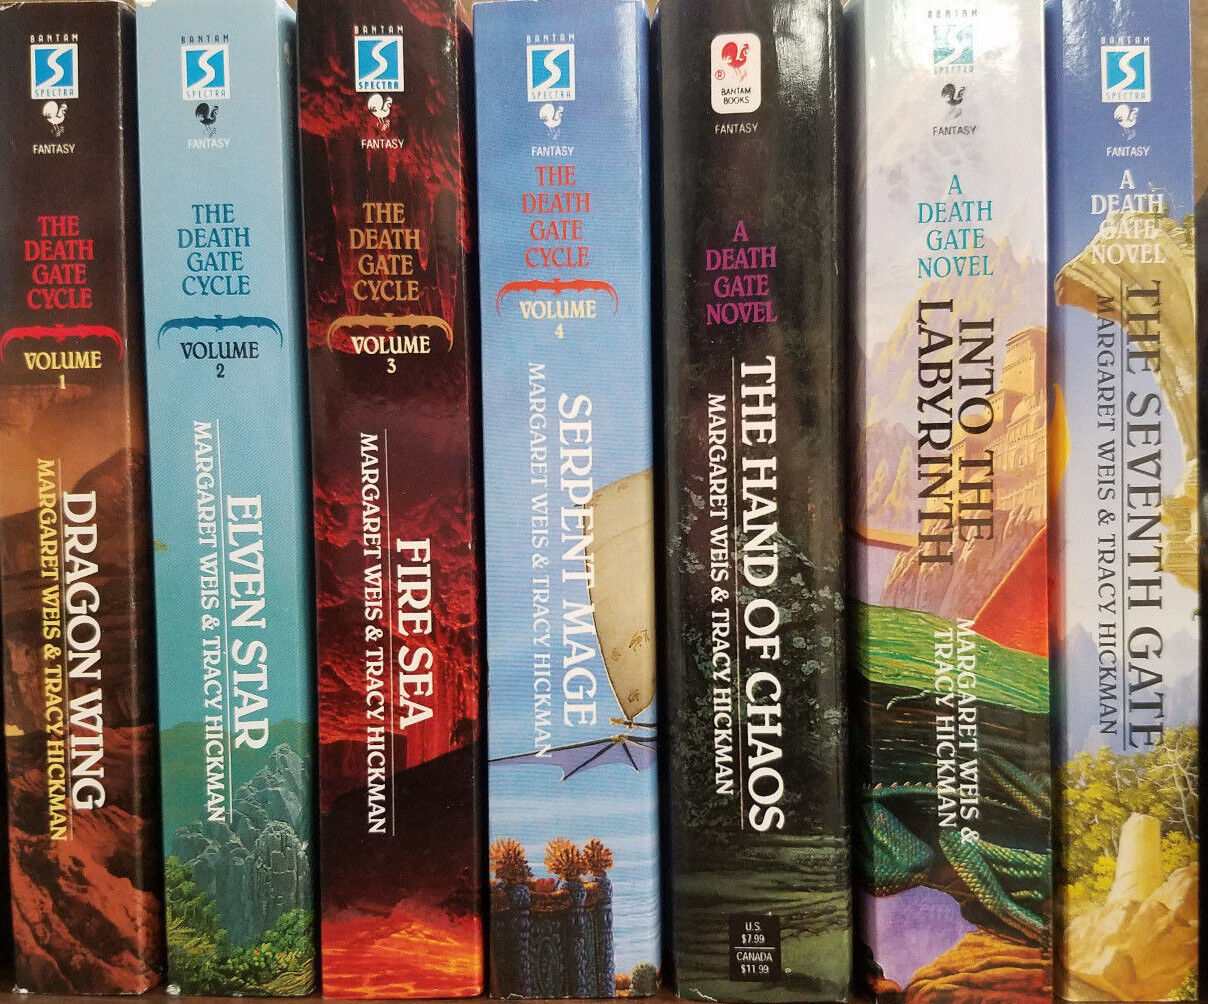 """Image for """"THE DEATH GATE CYCLE SERIES VOLUMES 1-7 MASS MARKET PAPERBACK NEW! by Weis, Margaret"""""""